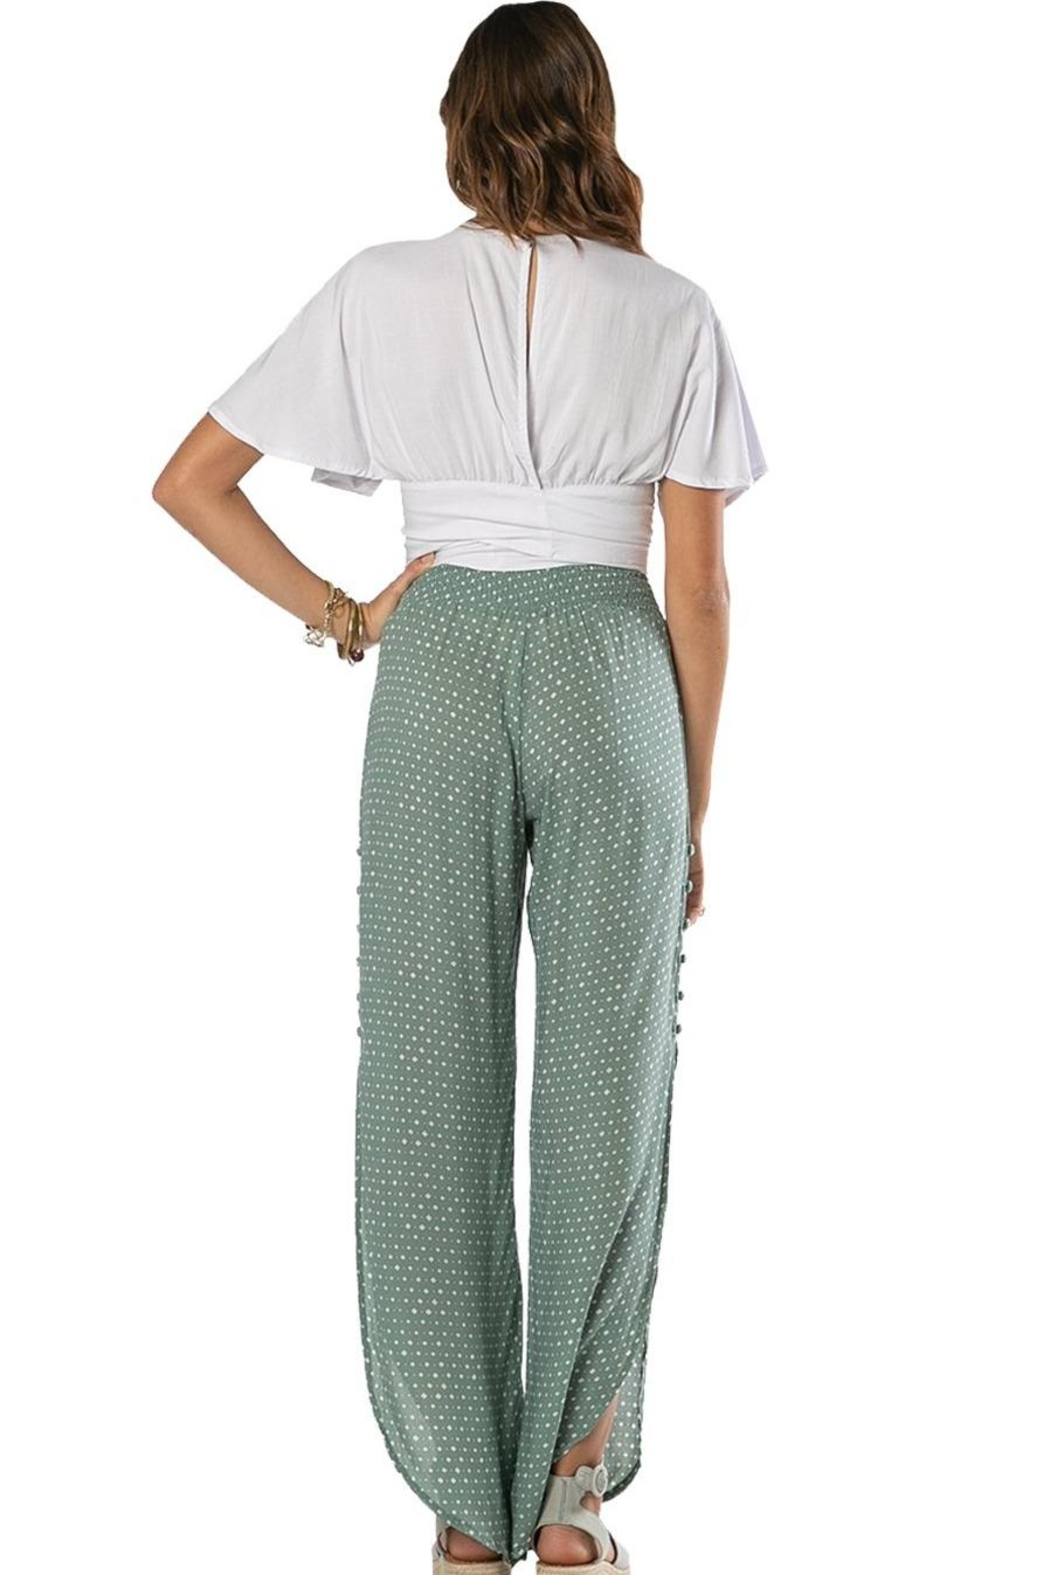 Khush Clothing Lavinia Wrap Around Tie Crop Top - Side Cropped Image